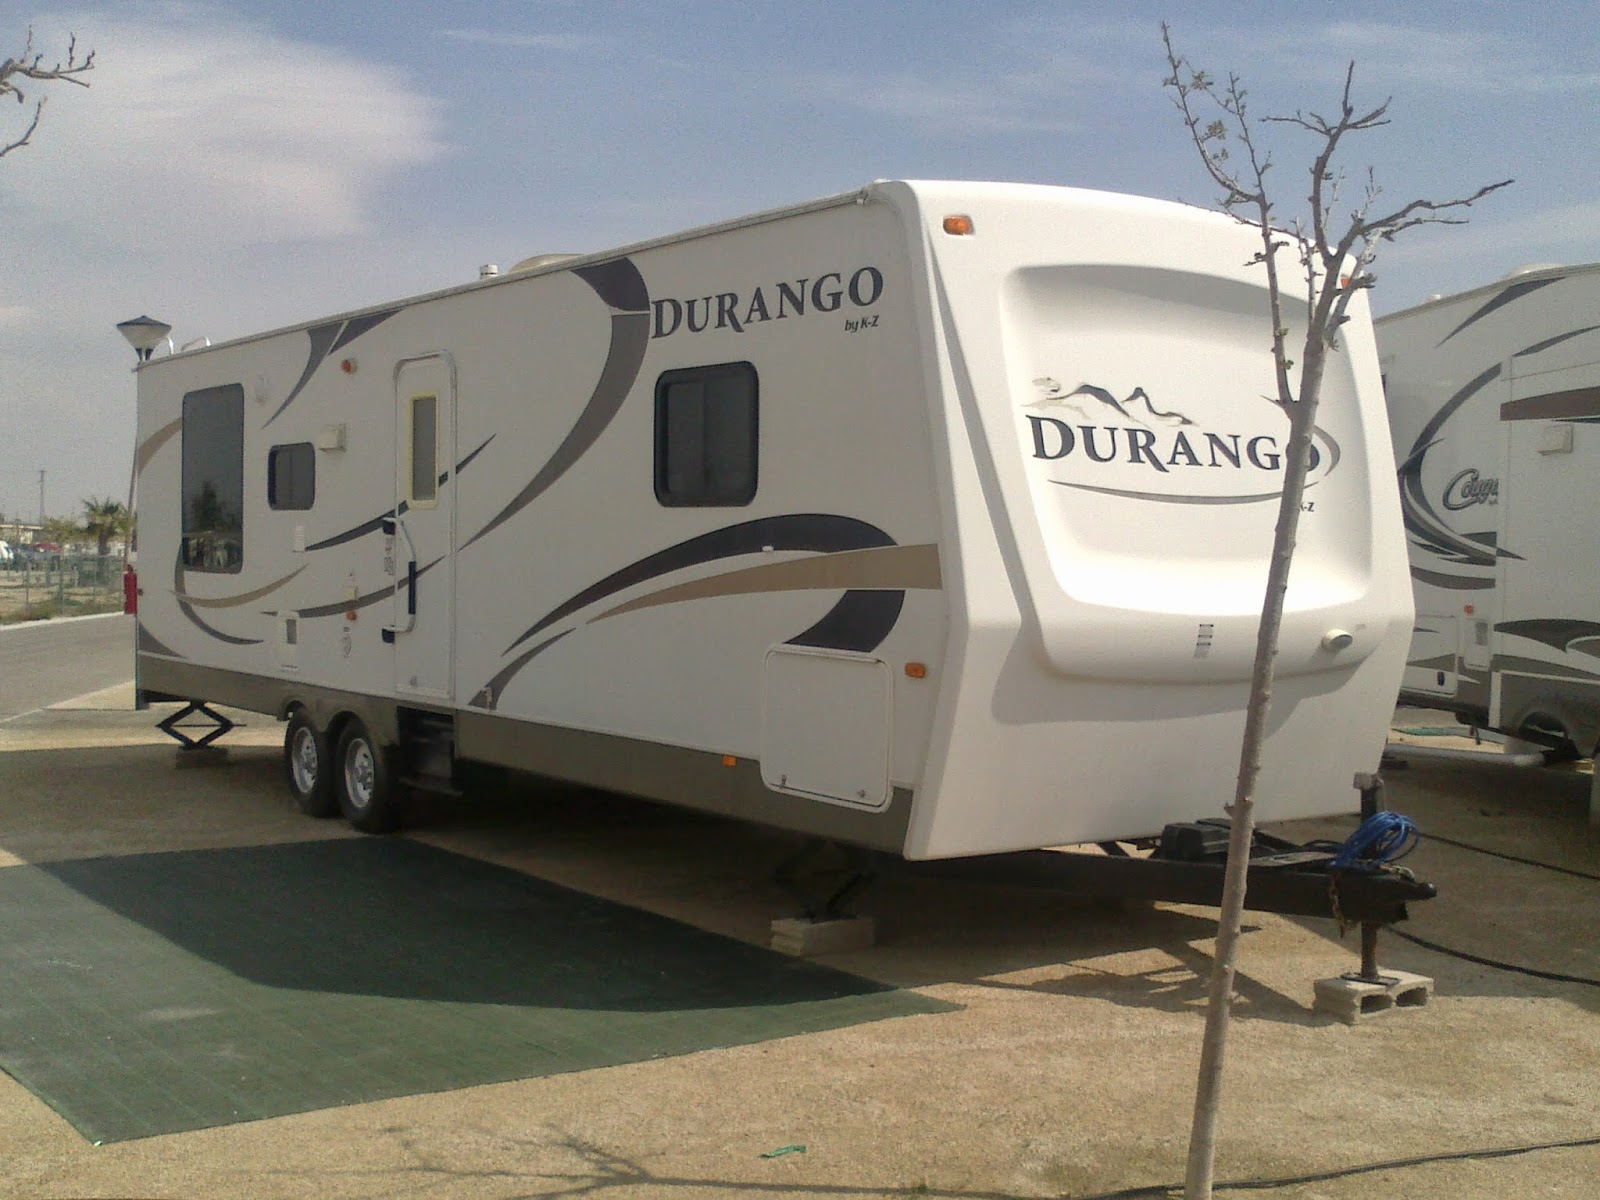 5th fifth wheel transport and deliver UK - Spain - Europe